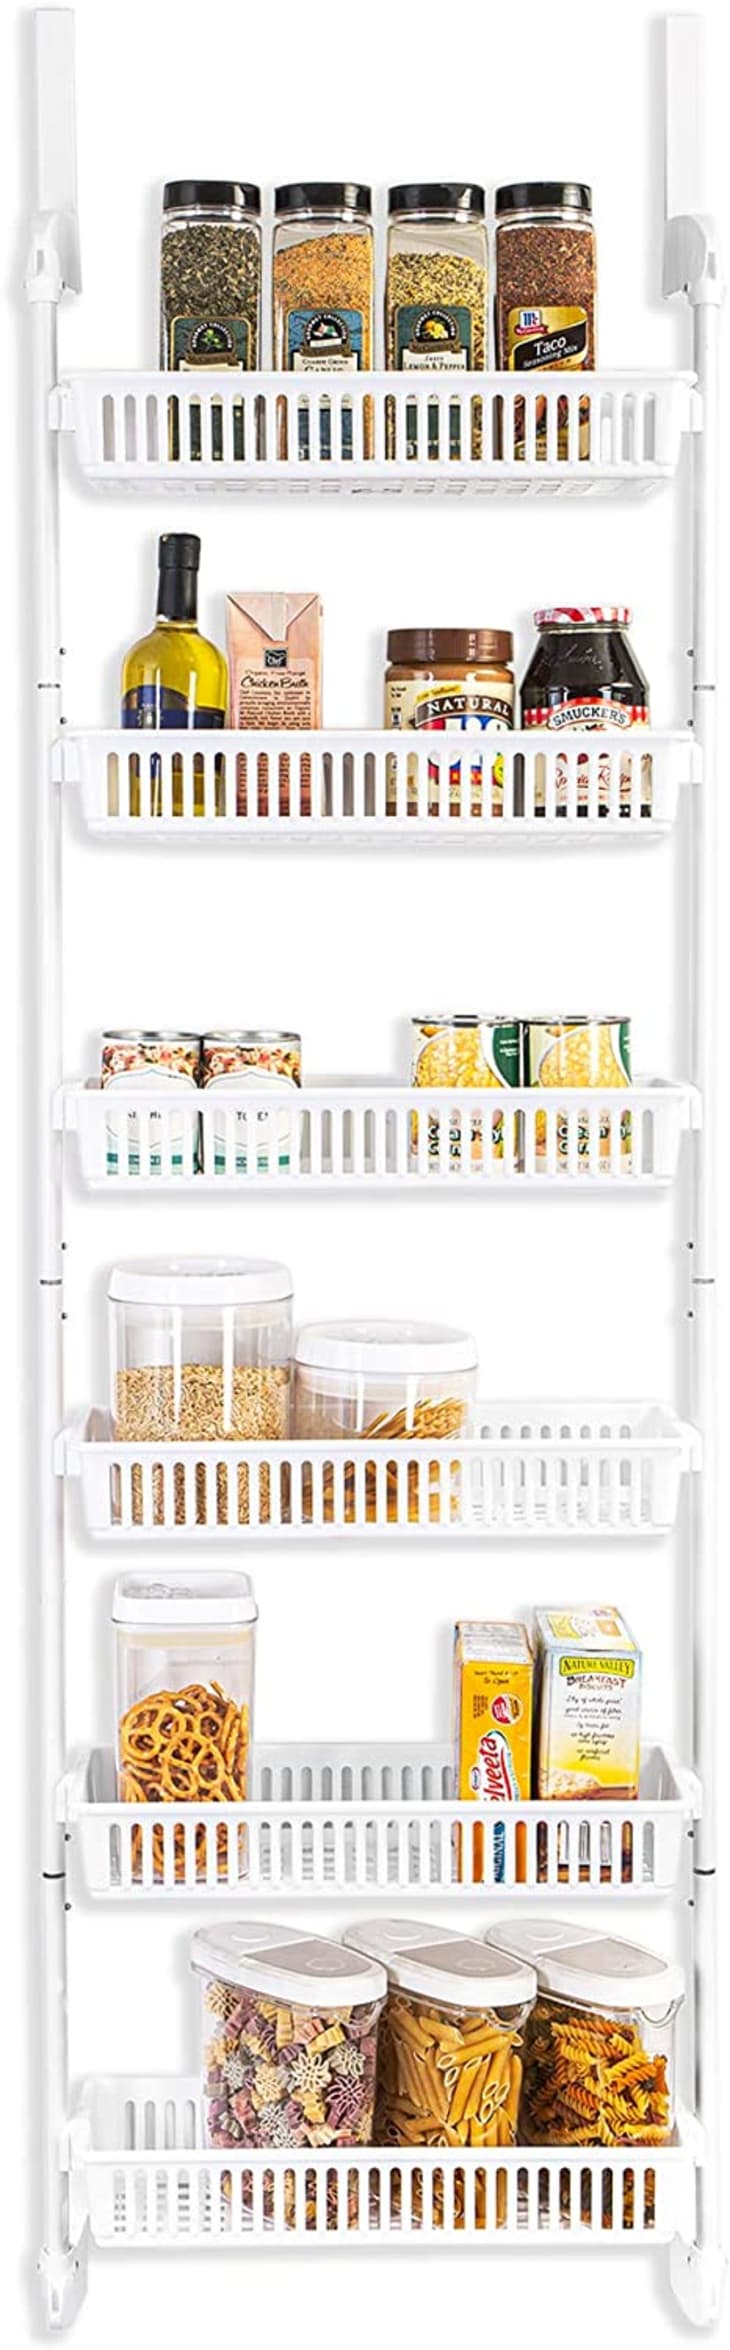 6 Clever Canned Food Storage Organizing Ideas Kitchn